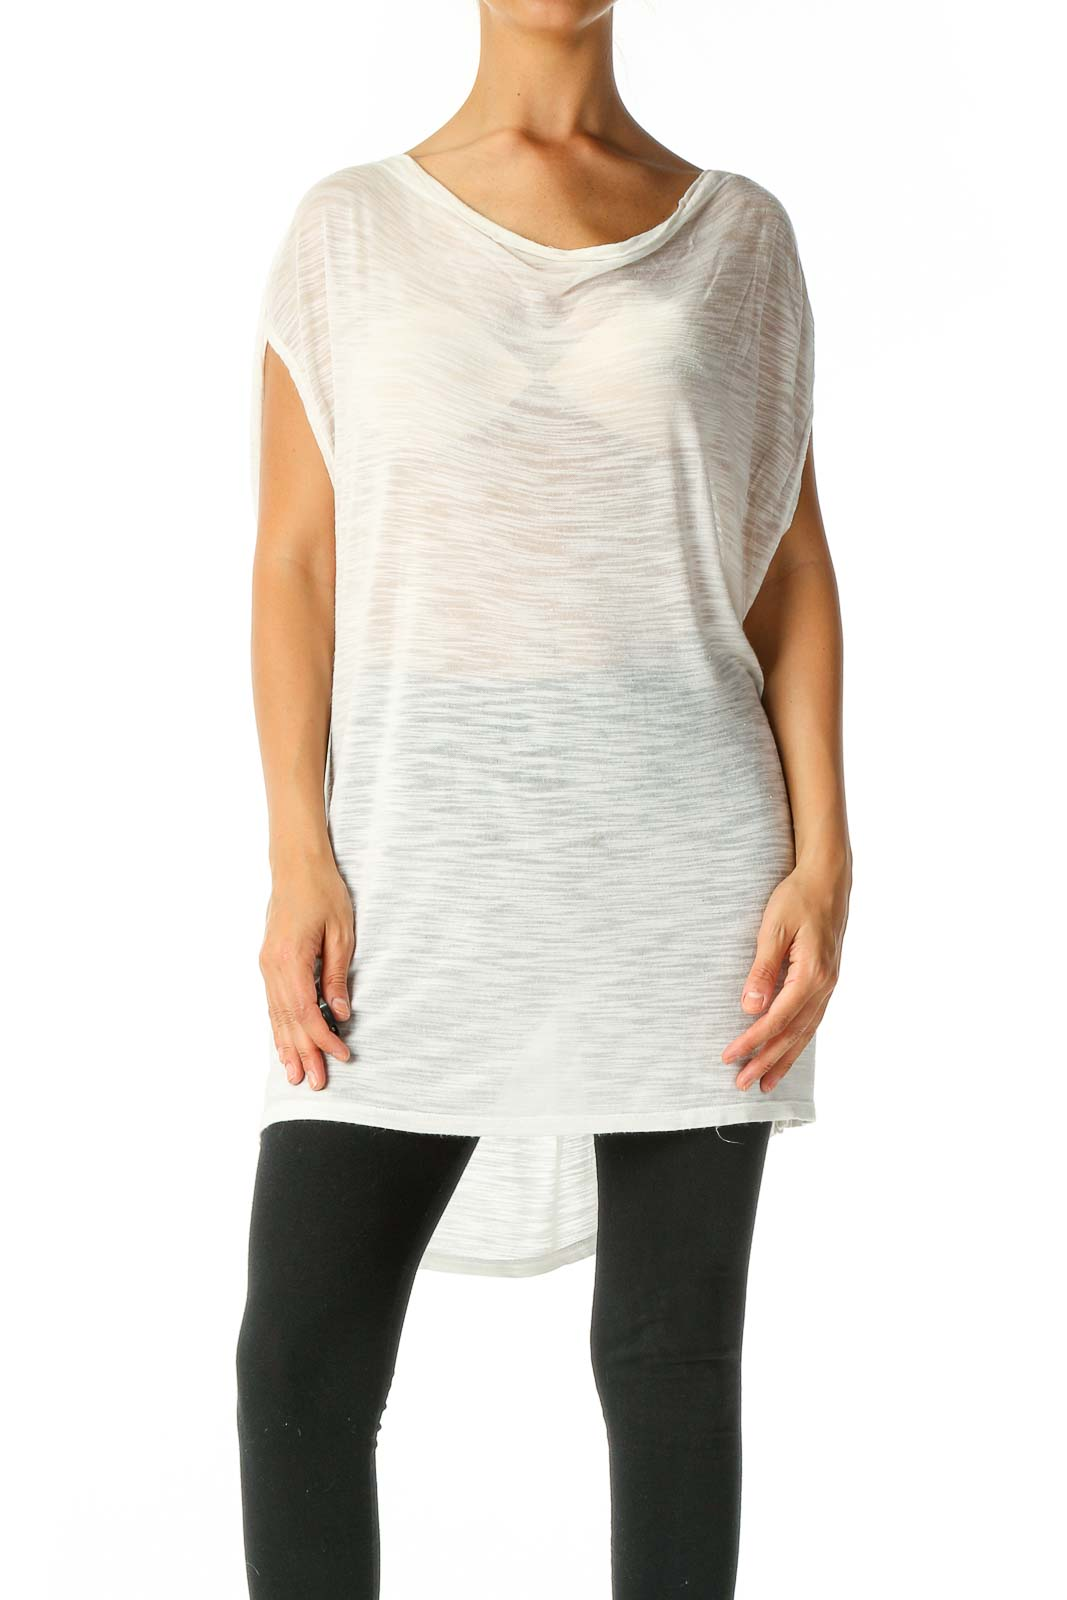 White Textured Casual T-Shirt Front